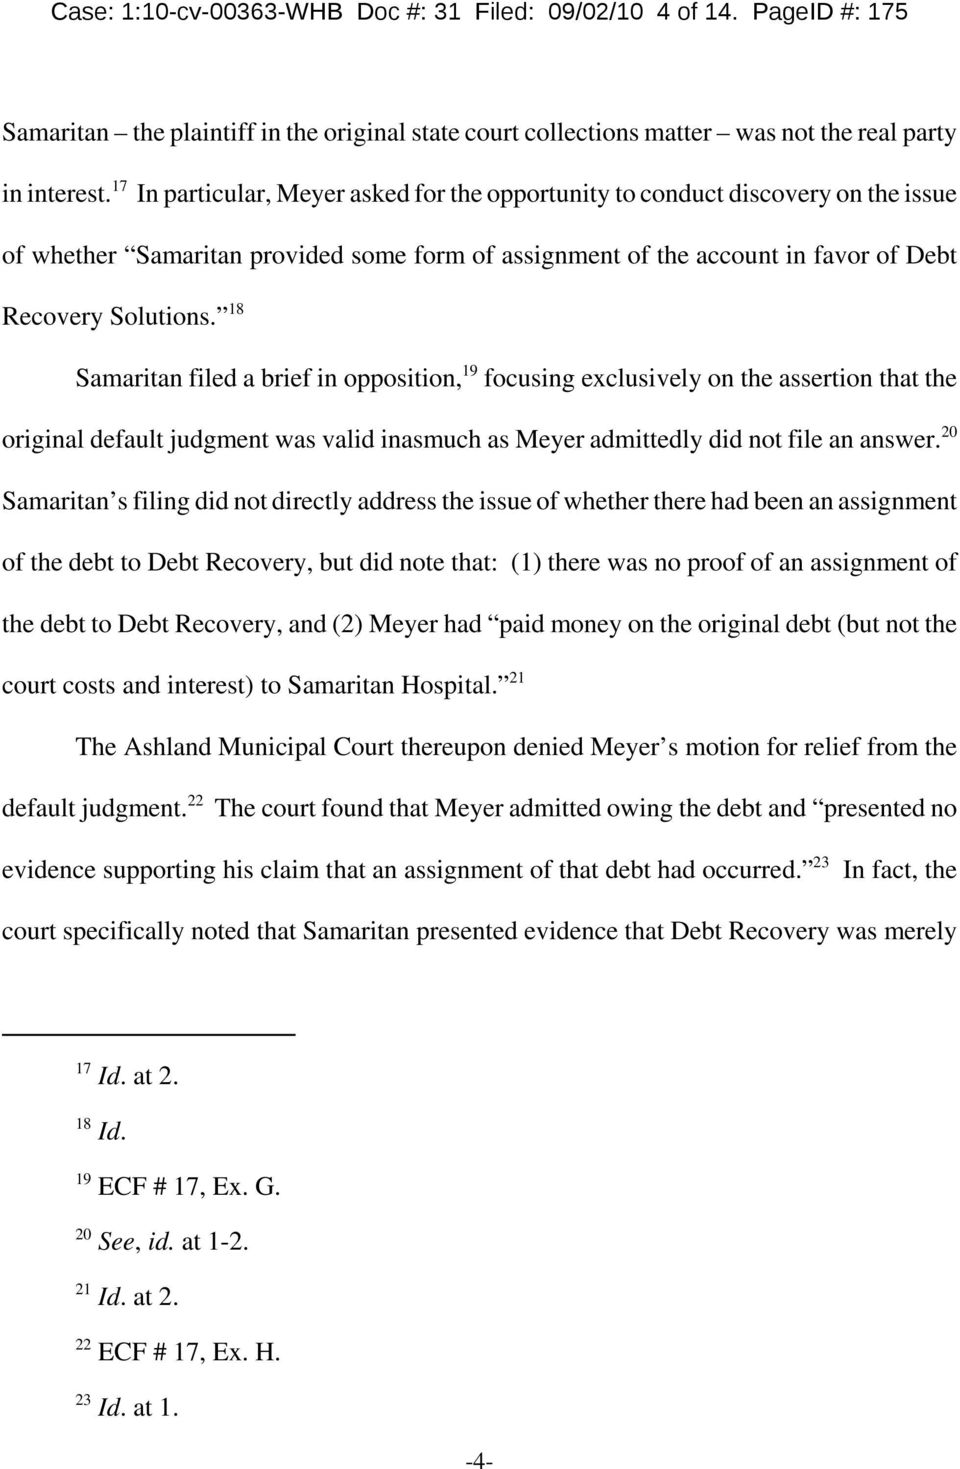 18 Samaritan filed a brief in opposition, 19 focusing exclusively on the assertion that the original default judgment was valid inasmuch as Meyer admittedly did not file an answer.